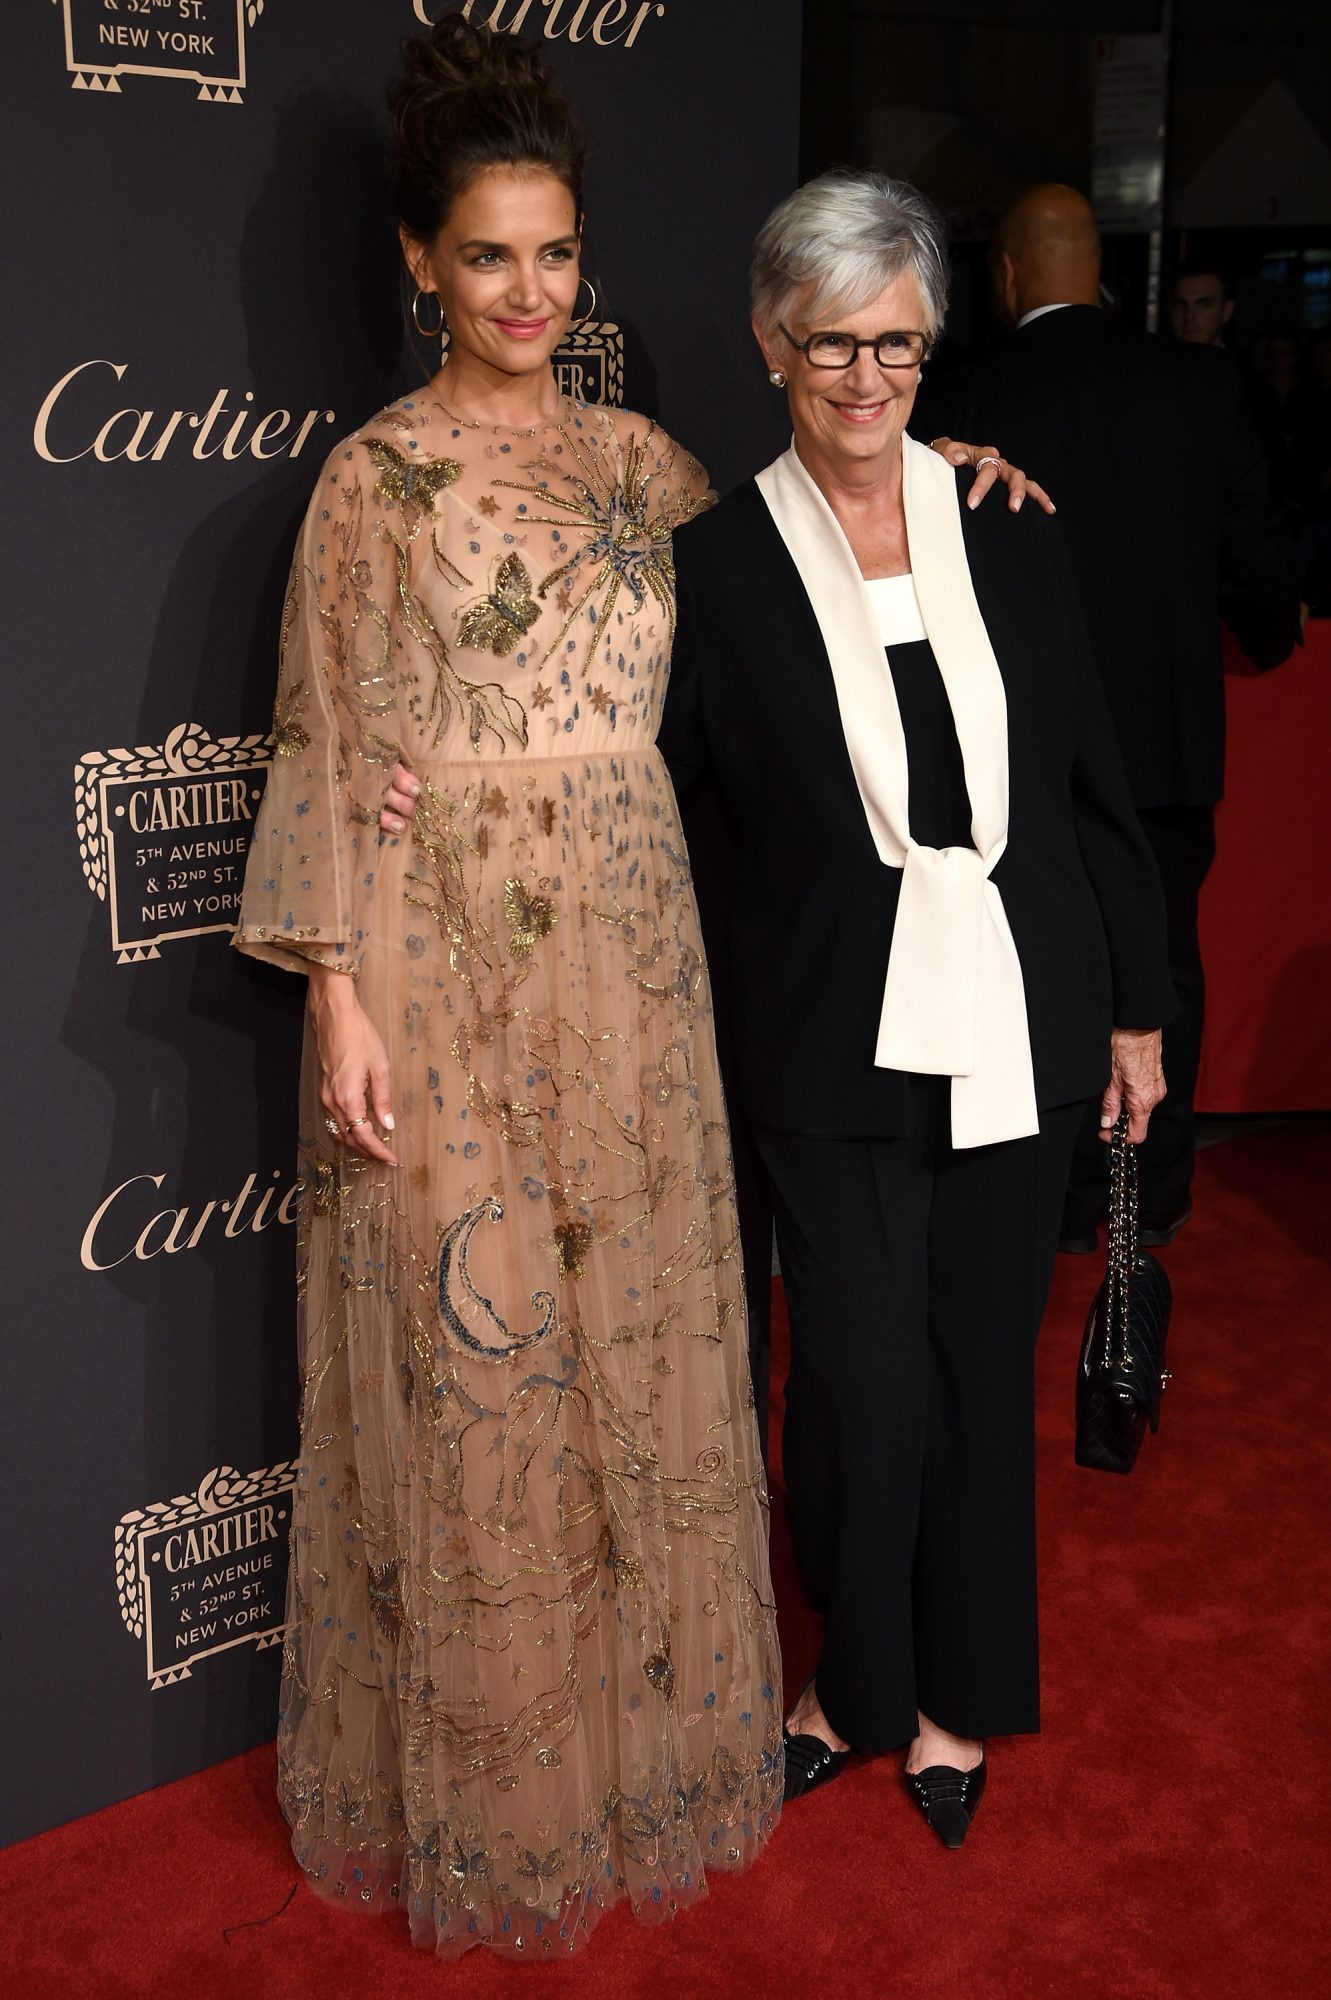 picture-of-katie-holmes-mom-cartier-photo1.jpg